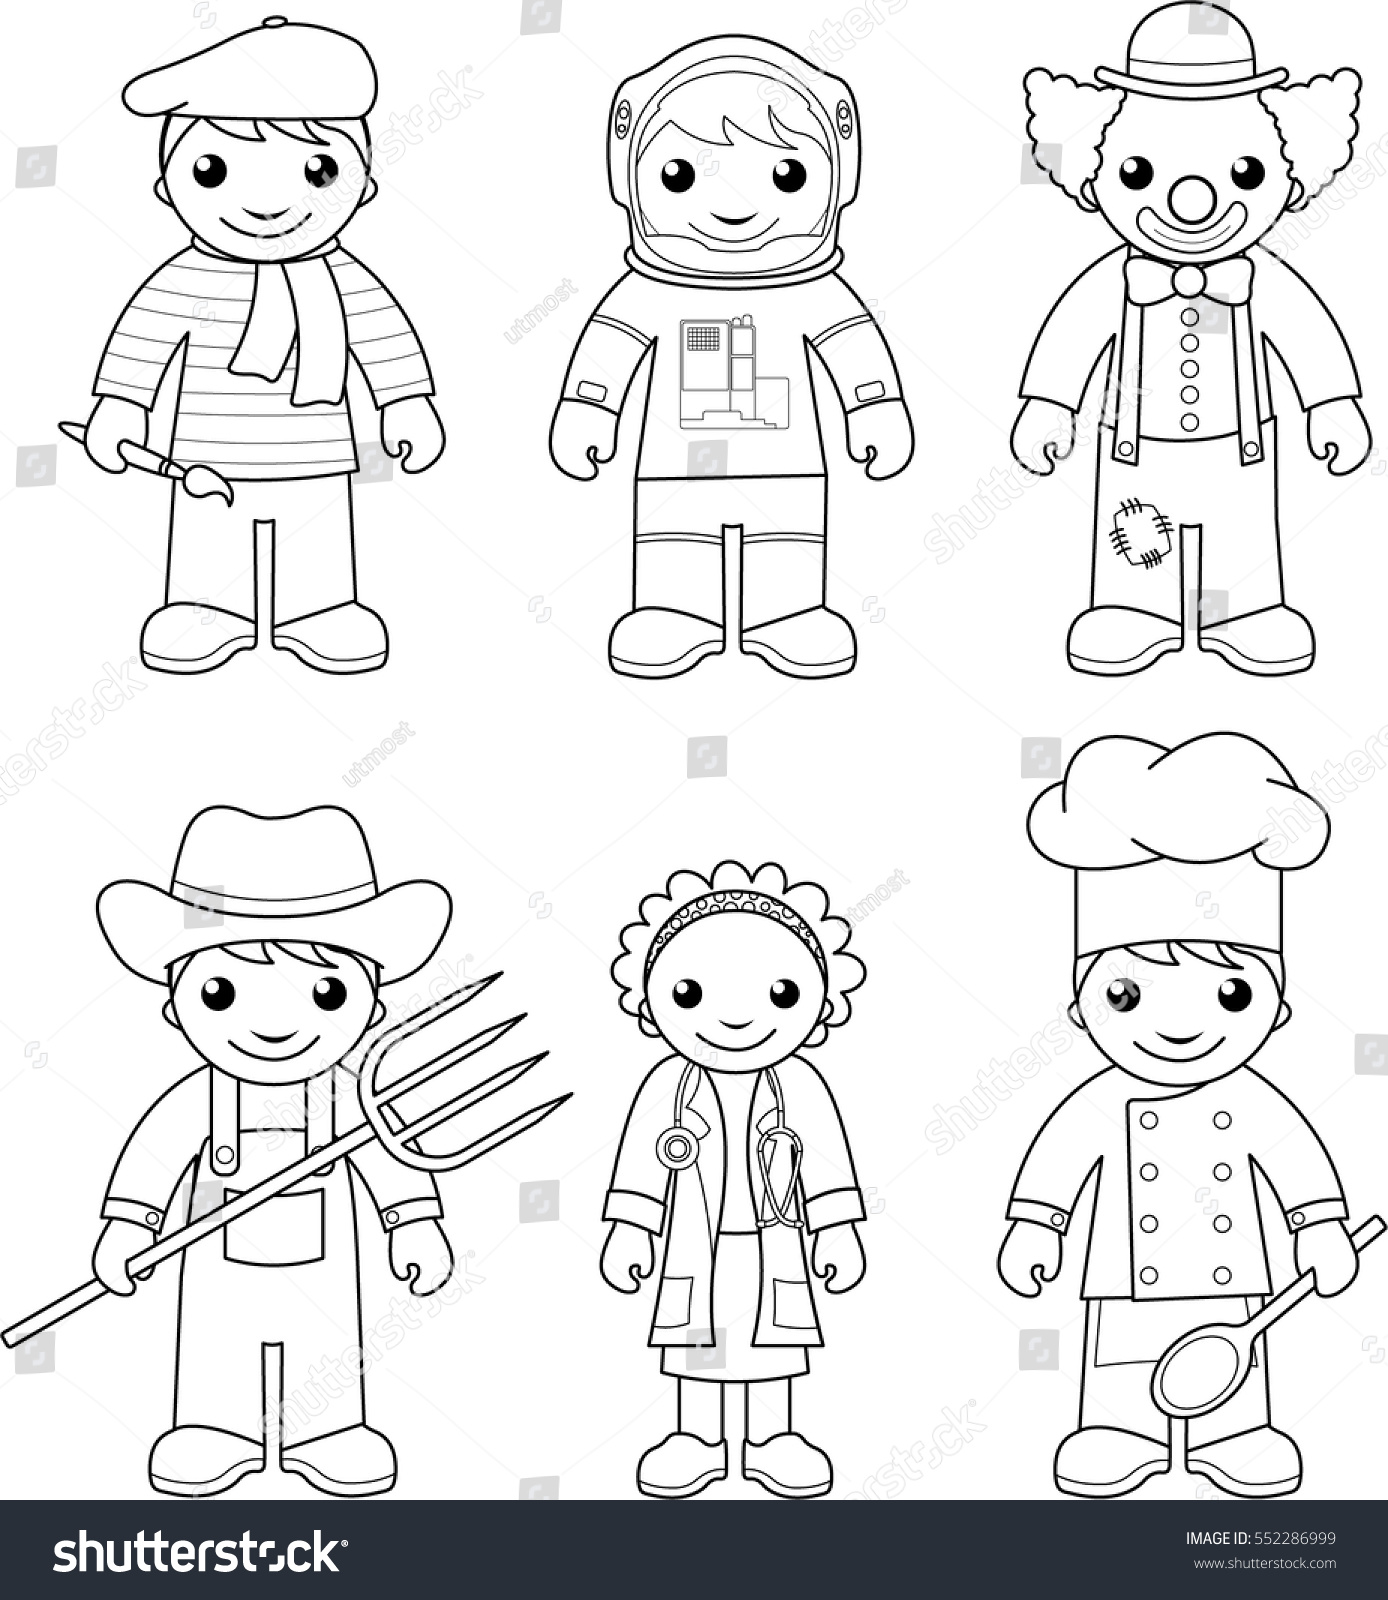 coloring page set vector illustrations black stock vector